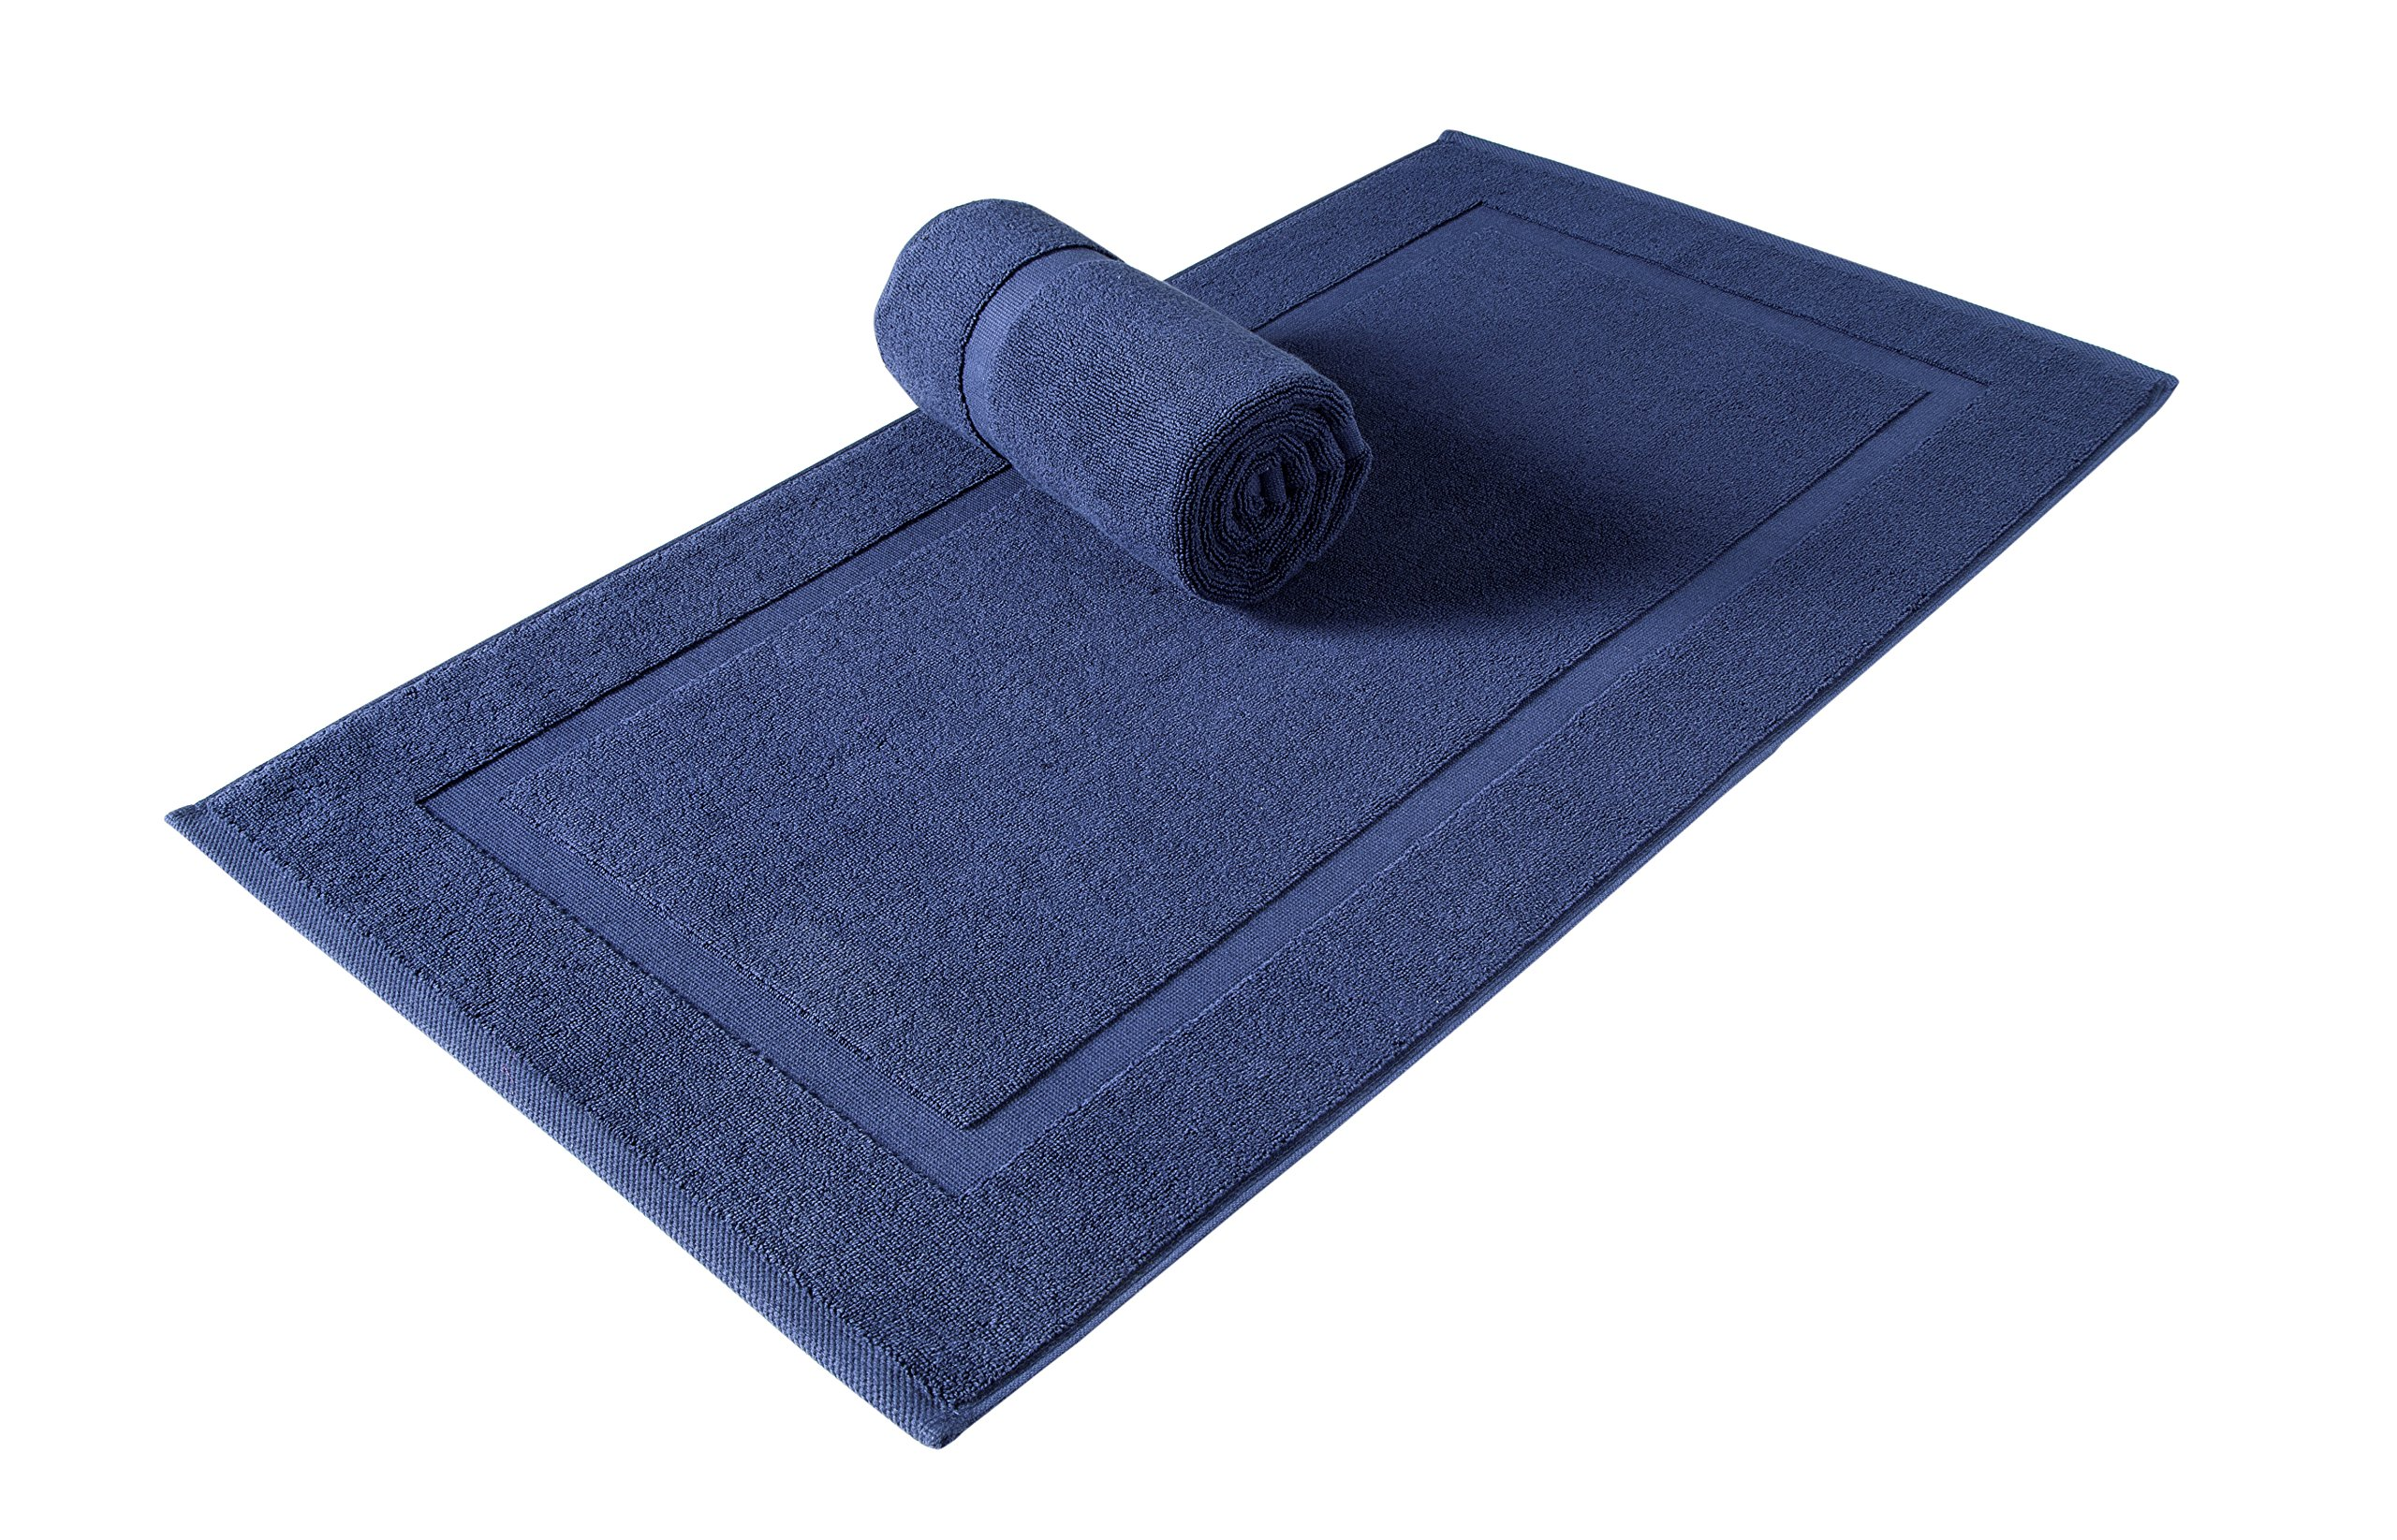 SALBAKOS Luxury Hotel Spa 100% Turkish Cotton Banded Panel Bath Mat Set 900gsm! 20''x34'' (Navy, 2 Pack)